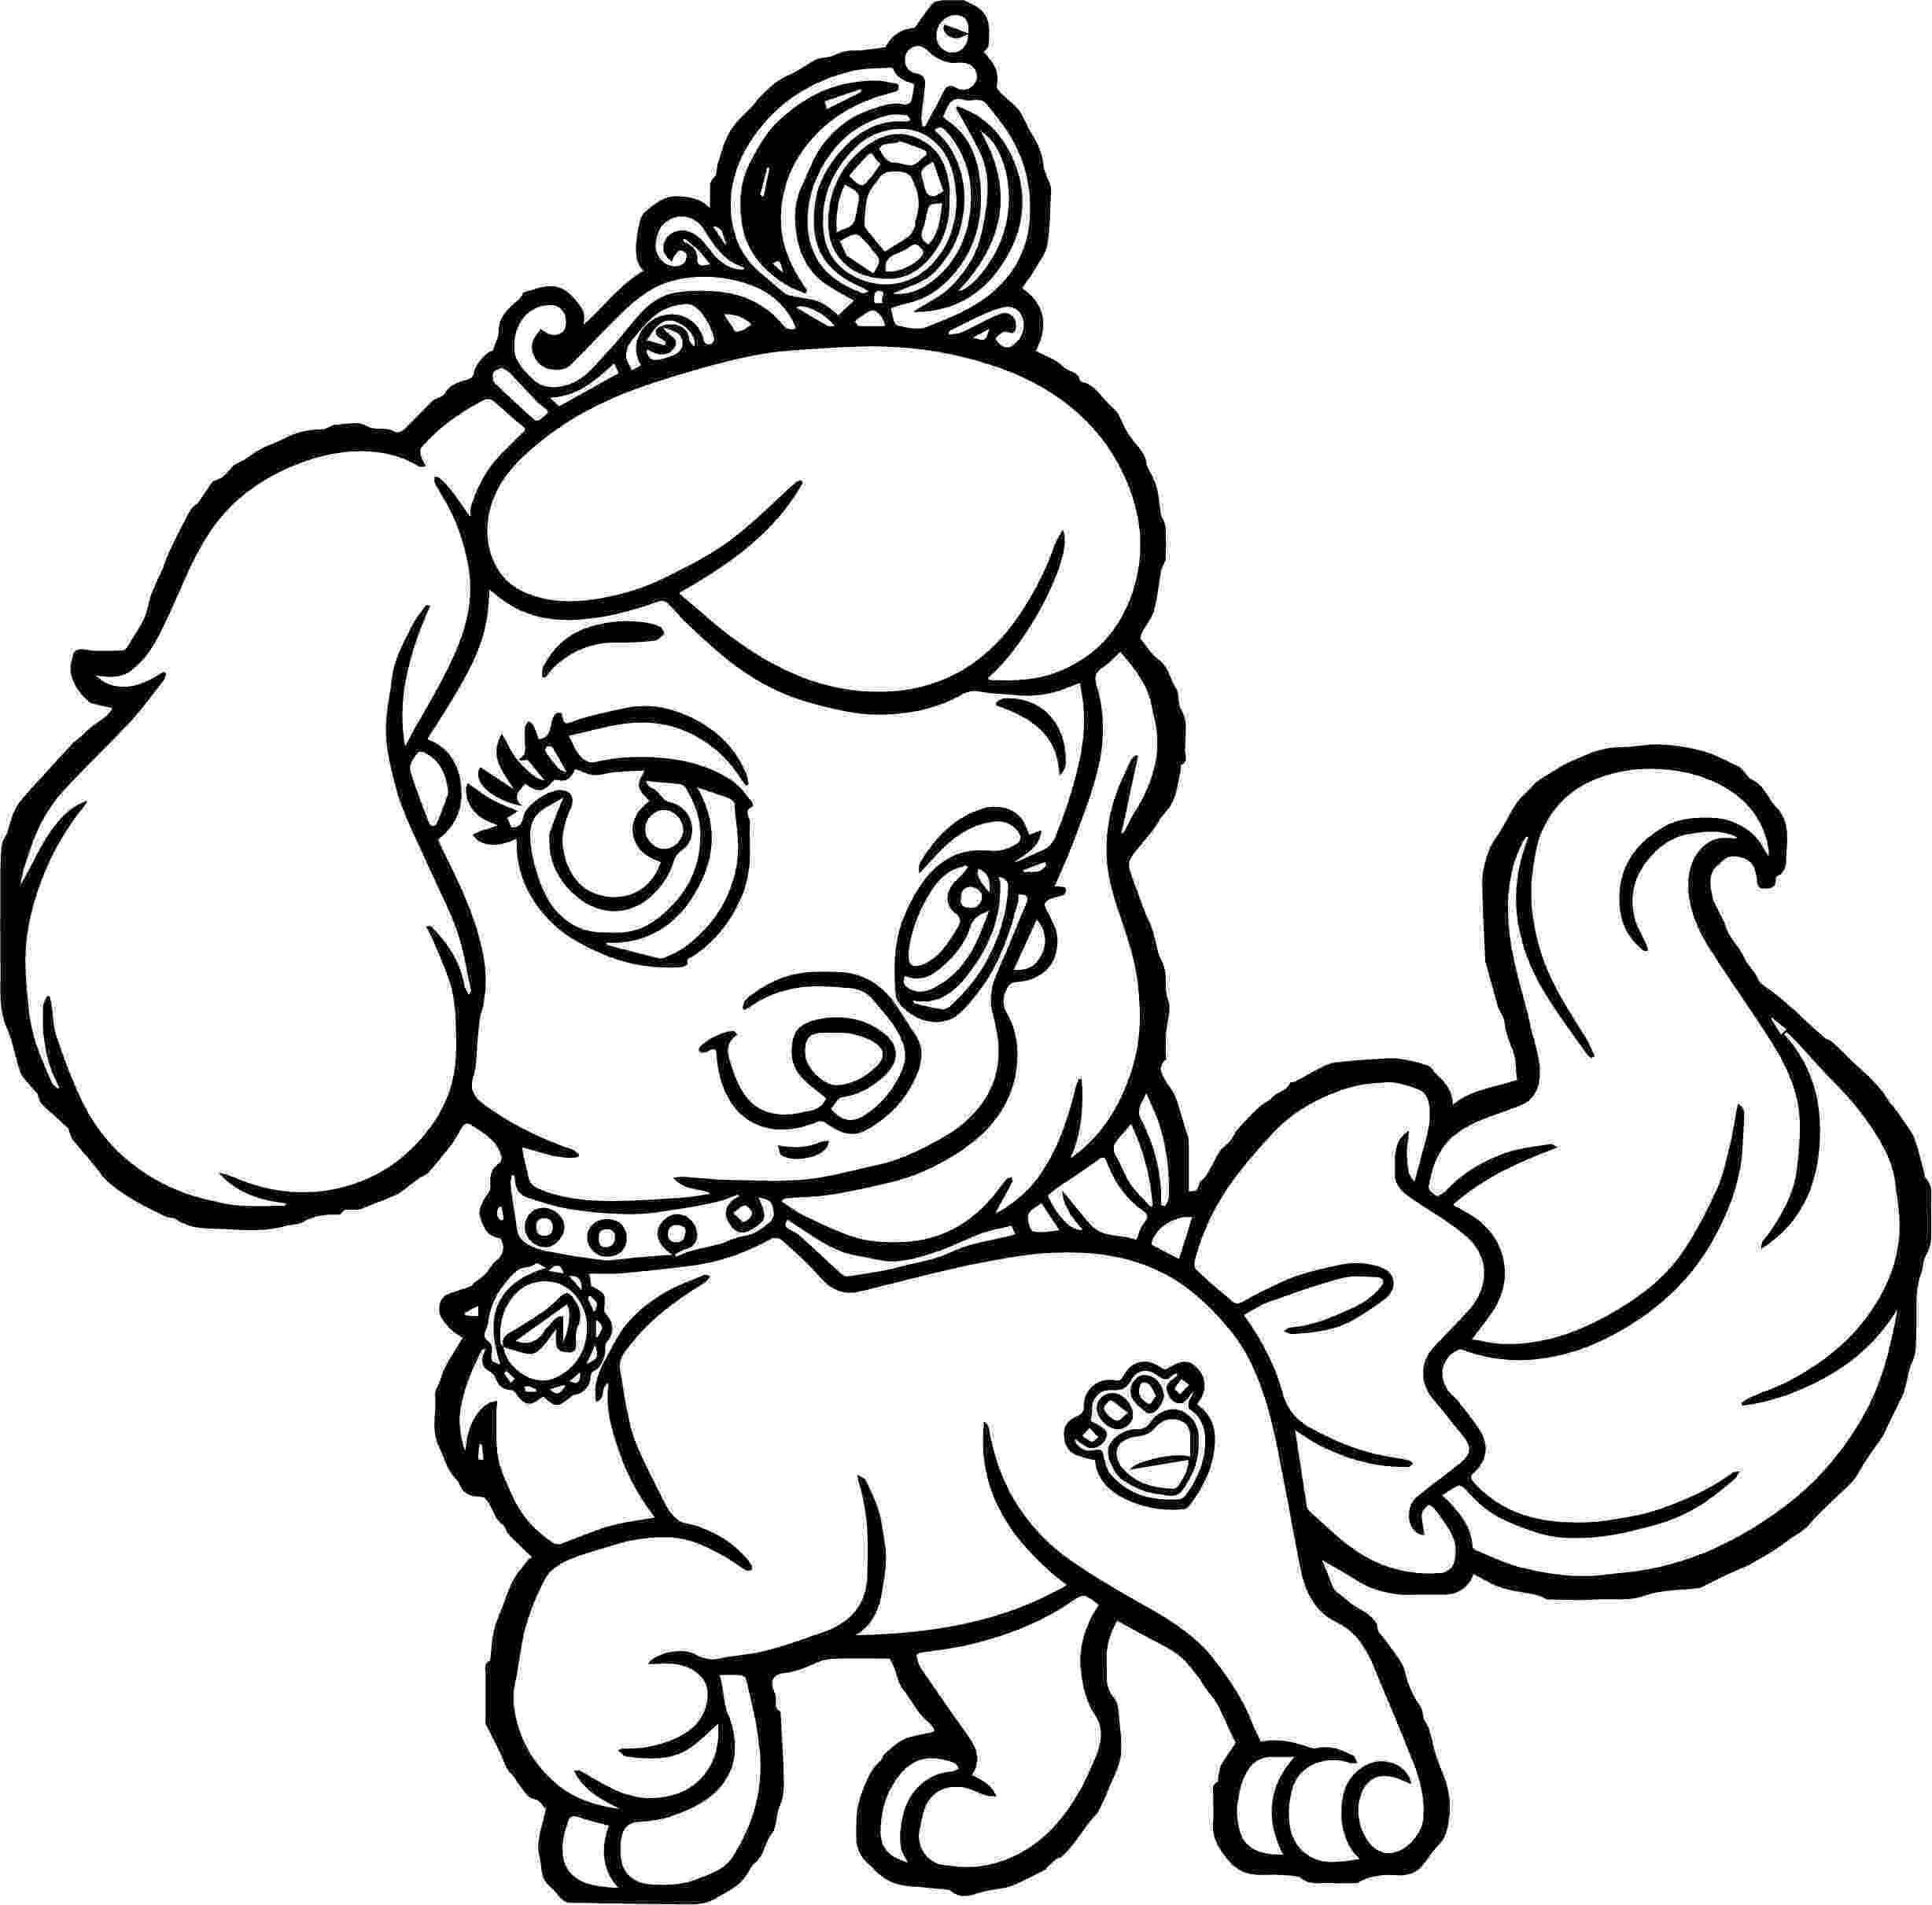 dog coloring pages for preschoolers puppy drawing images at getdrawingscom free for preschoolers coloring for pages dog